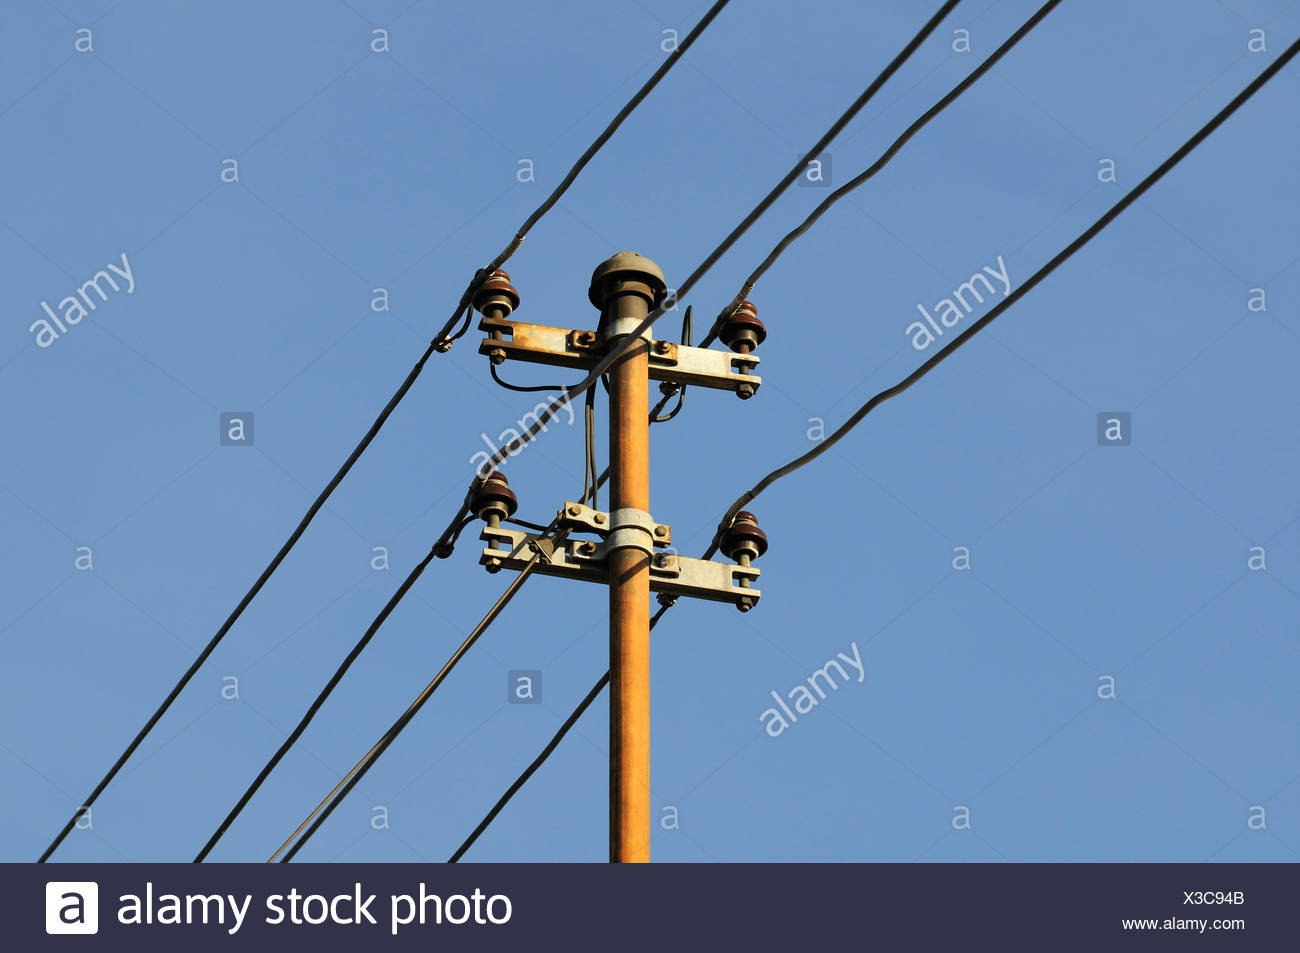 View of an old house utility pole with 4 wires and ceramic